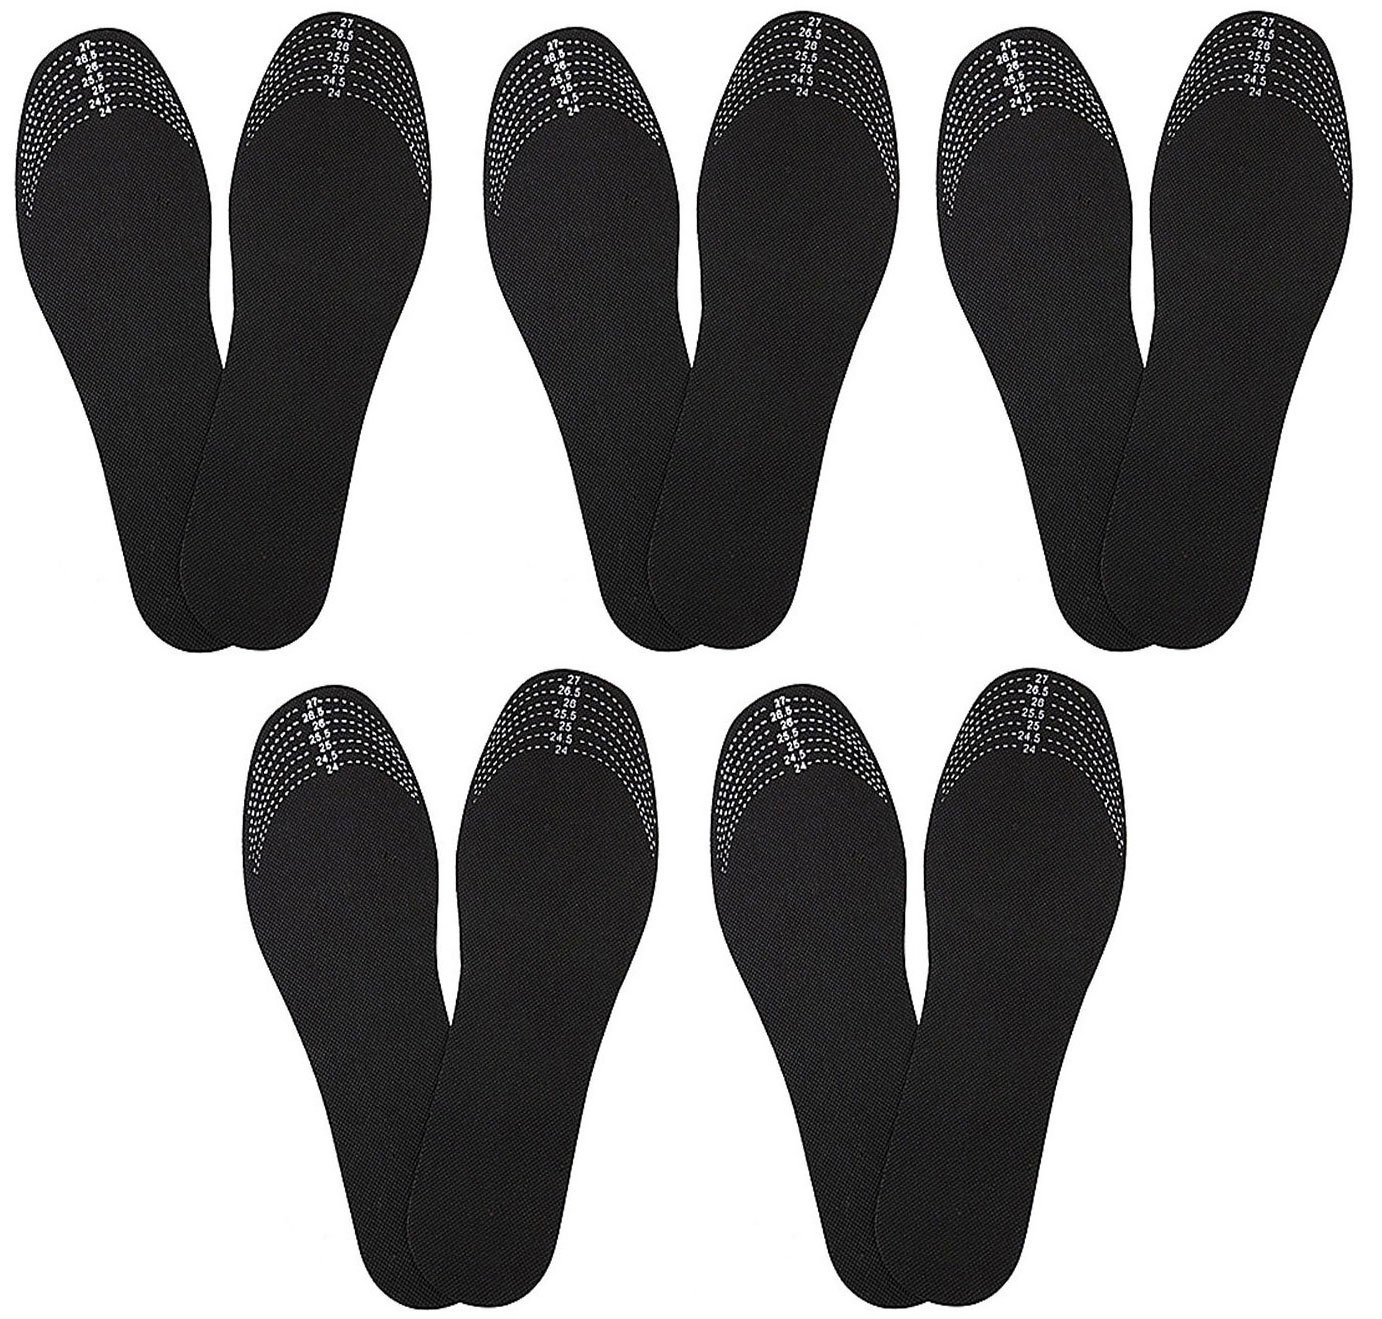 Pack of 5 Pairs Which Is 10 Insoles to Kill Off the Cause of Odor From Smelly Feet and Shoes Naturally with Activated Charcoal Wetness Drying and Odor Absorbing Shoe Insoles for Women's 7-12 and Mens 5.5-10.5 USA and Canada Shoe Sizes romanson rm 0358q lr brown